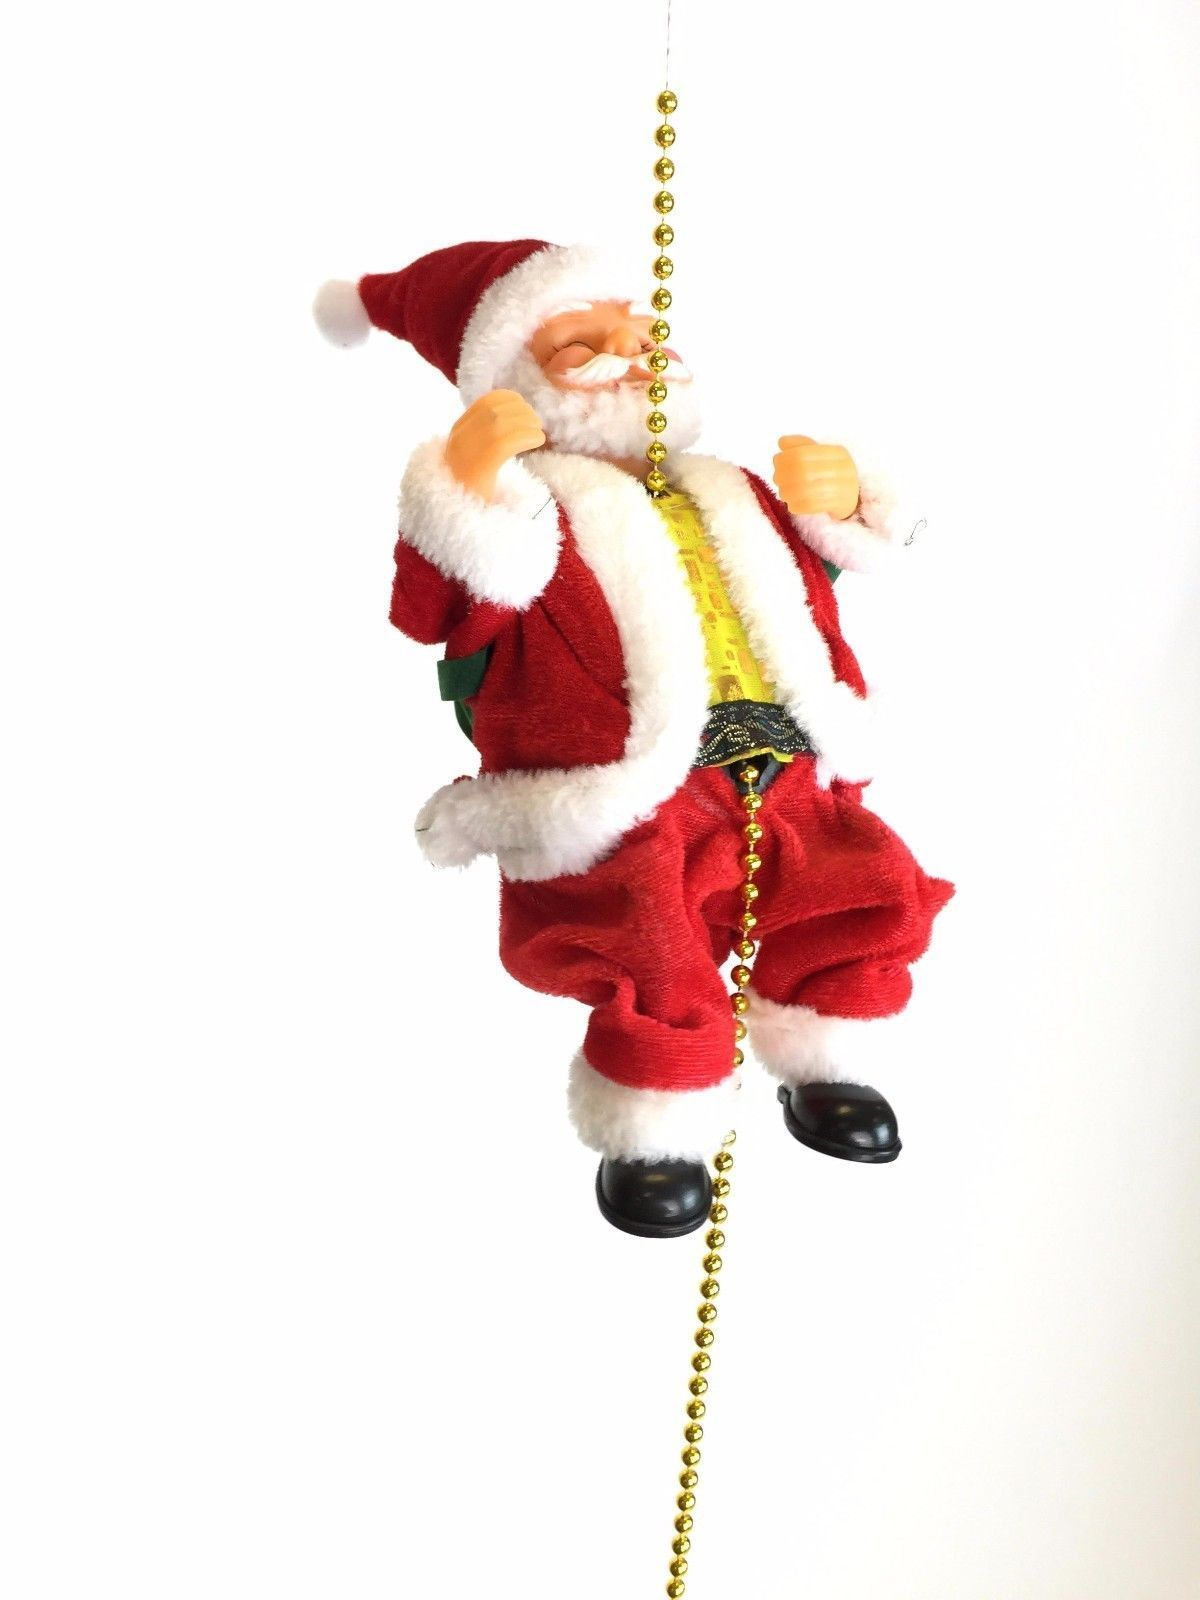 Flying santa fibre optic christmas decoration - Musical Climbing Santa Clause Figure Decoration Rope Flying Toy Christmas Tree View